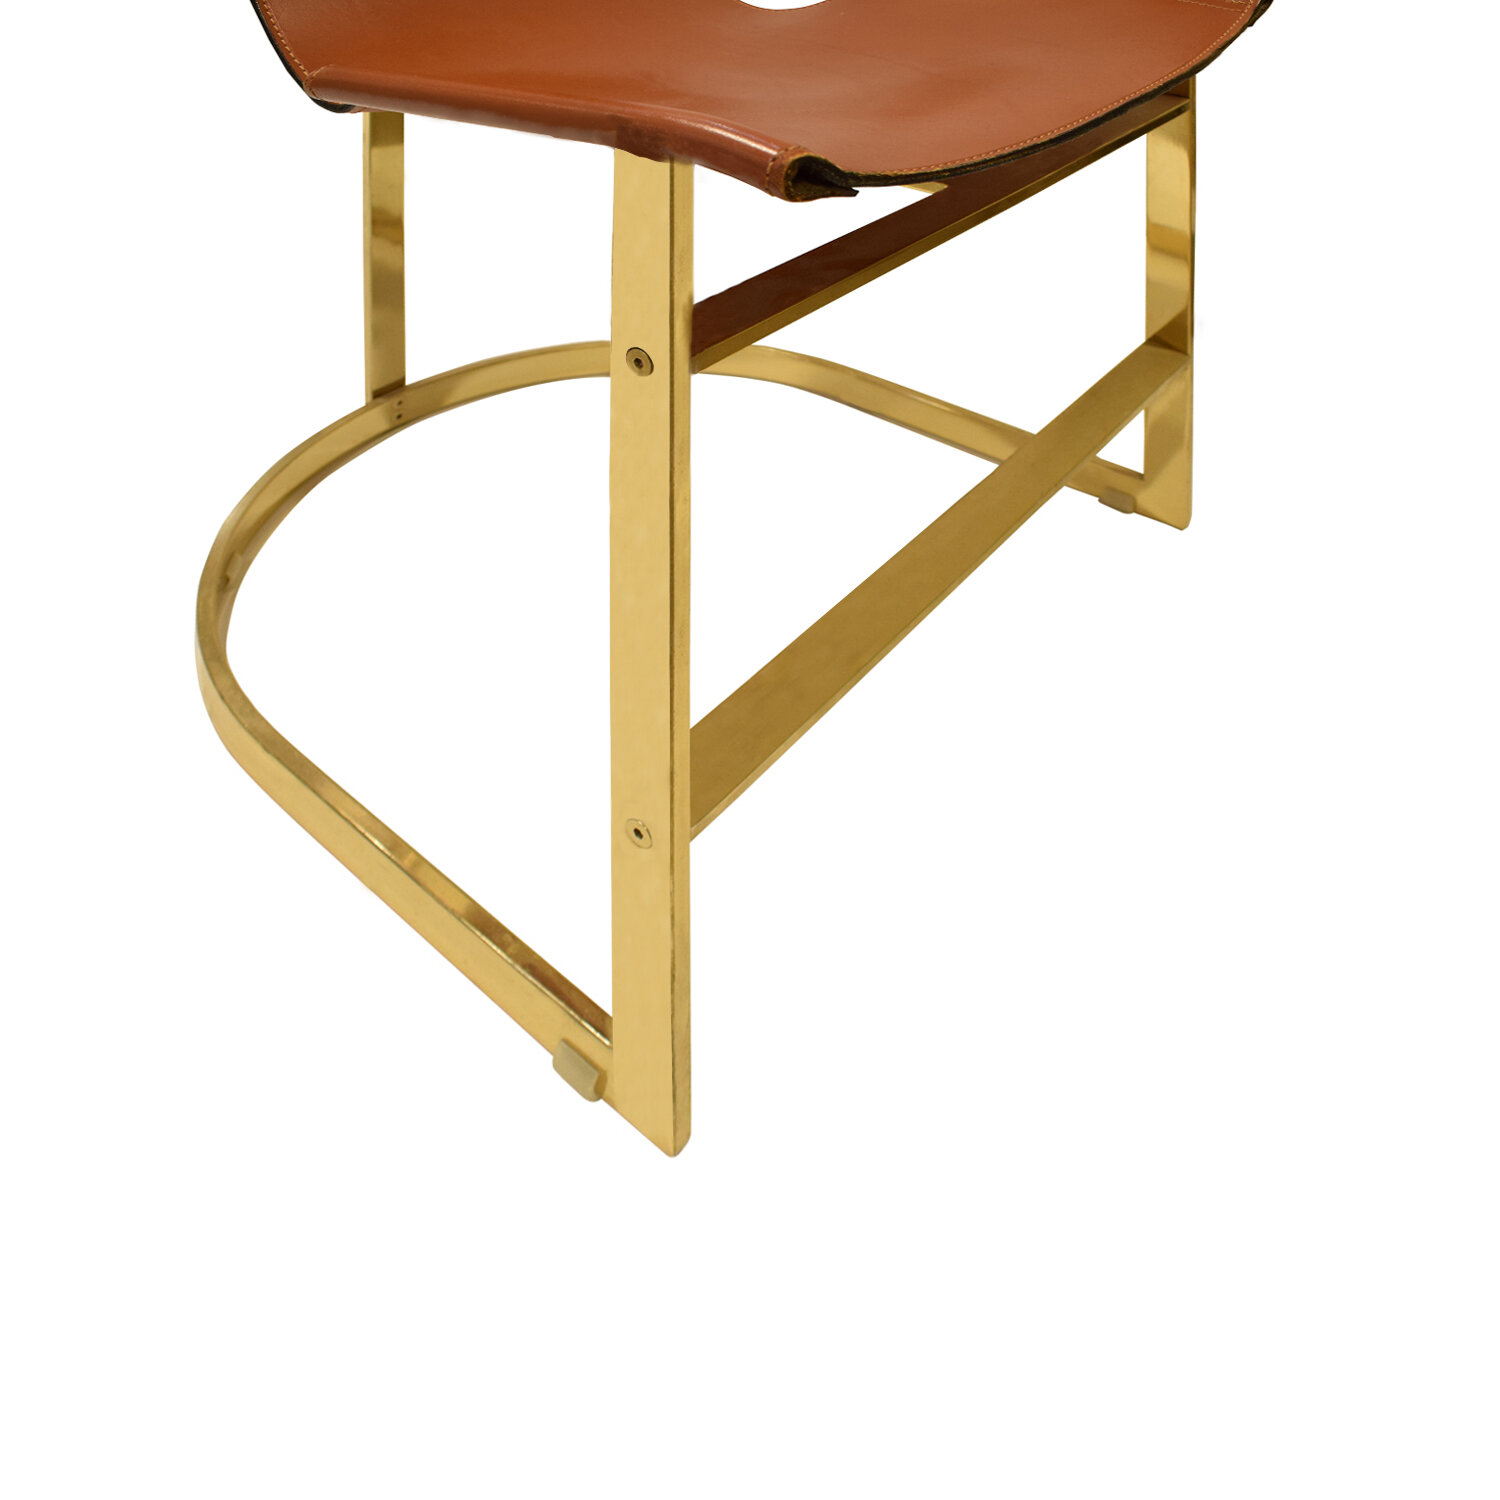 70s 75 brass with leather sling dinningchairs197 dtl bse.jpg